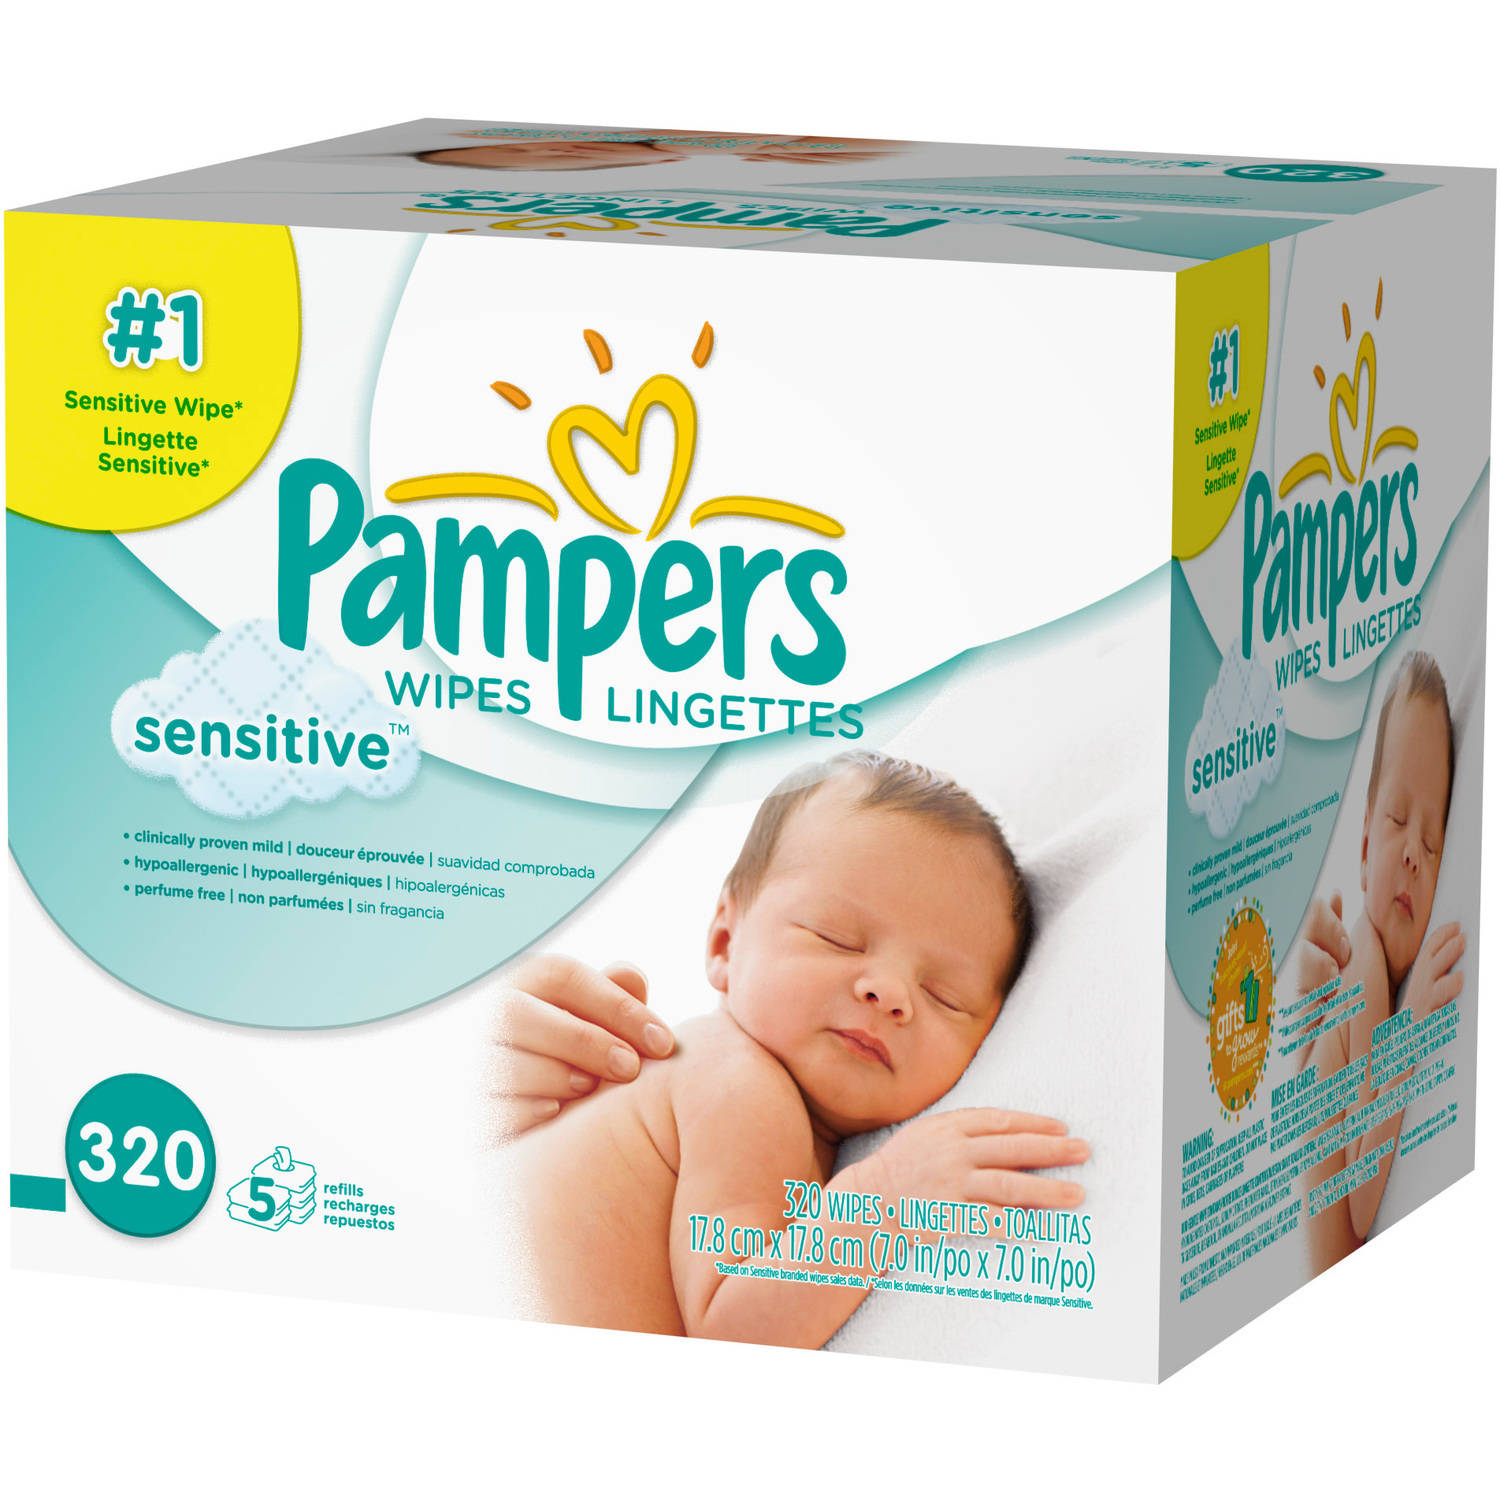 Pampers Sensitive Baby Wipes Refills, 320 sheets